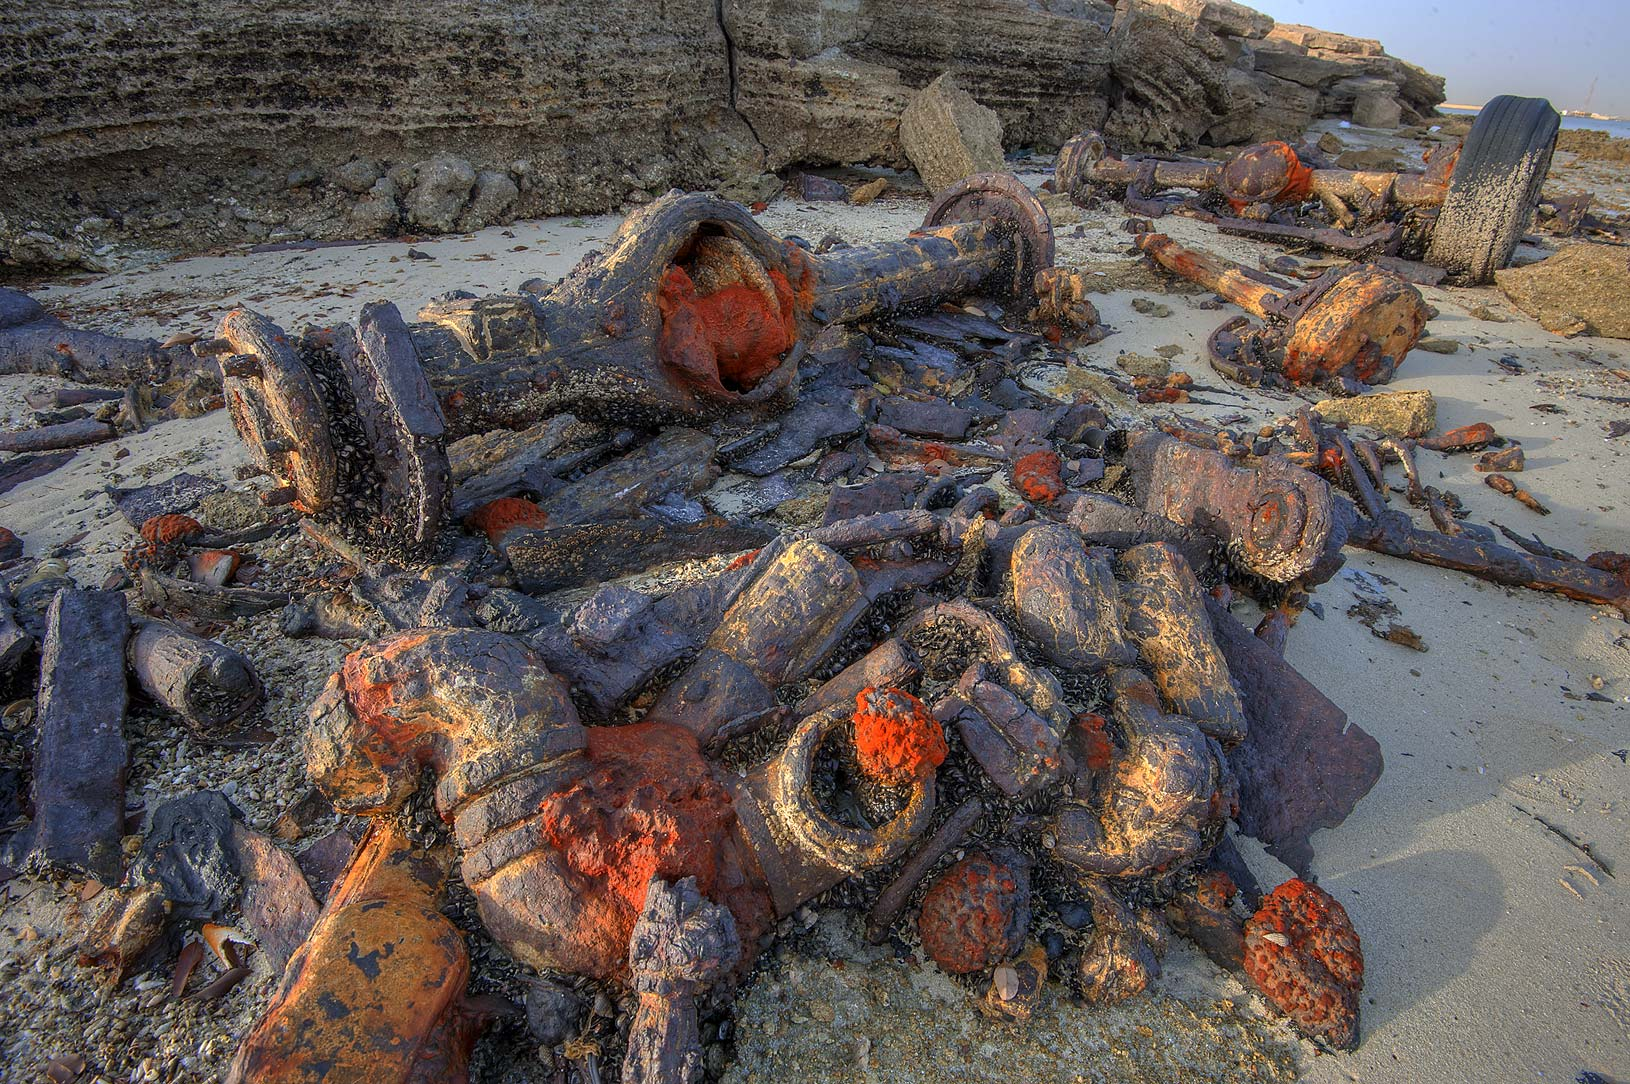 Rusty iron parts of a decomposing vehicle at low...Jazirat Bin Ghanim). Al Khor, Qatar